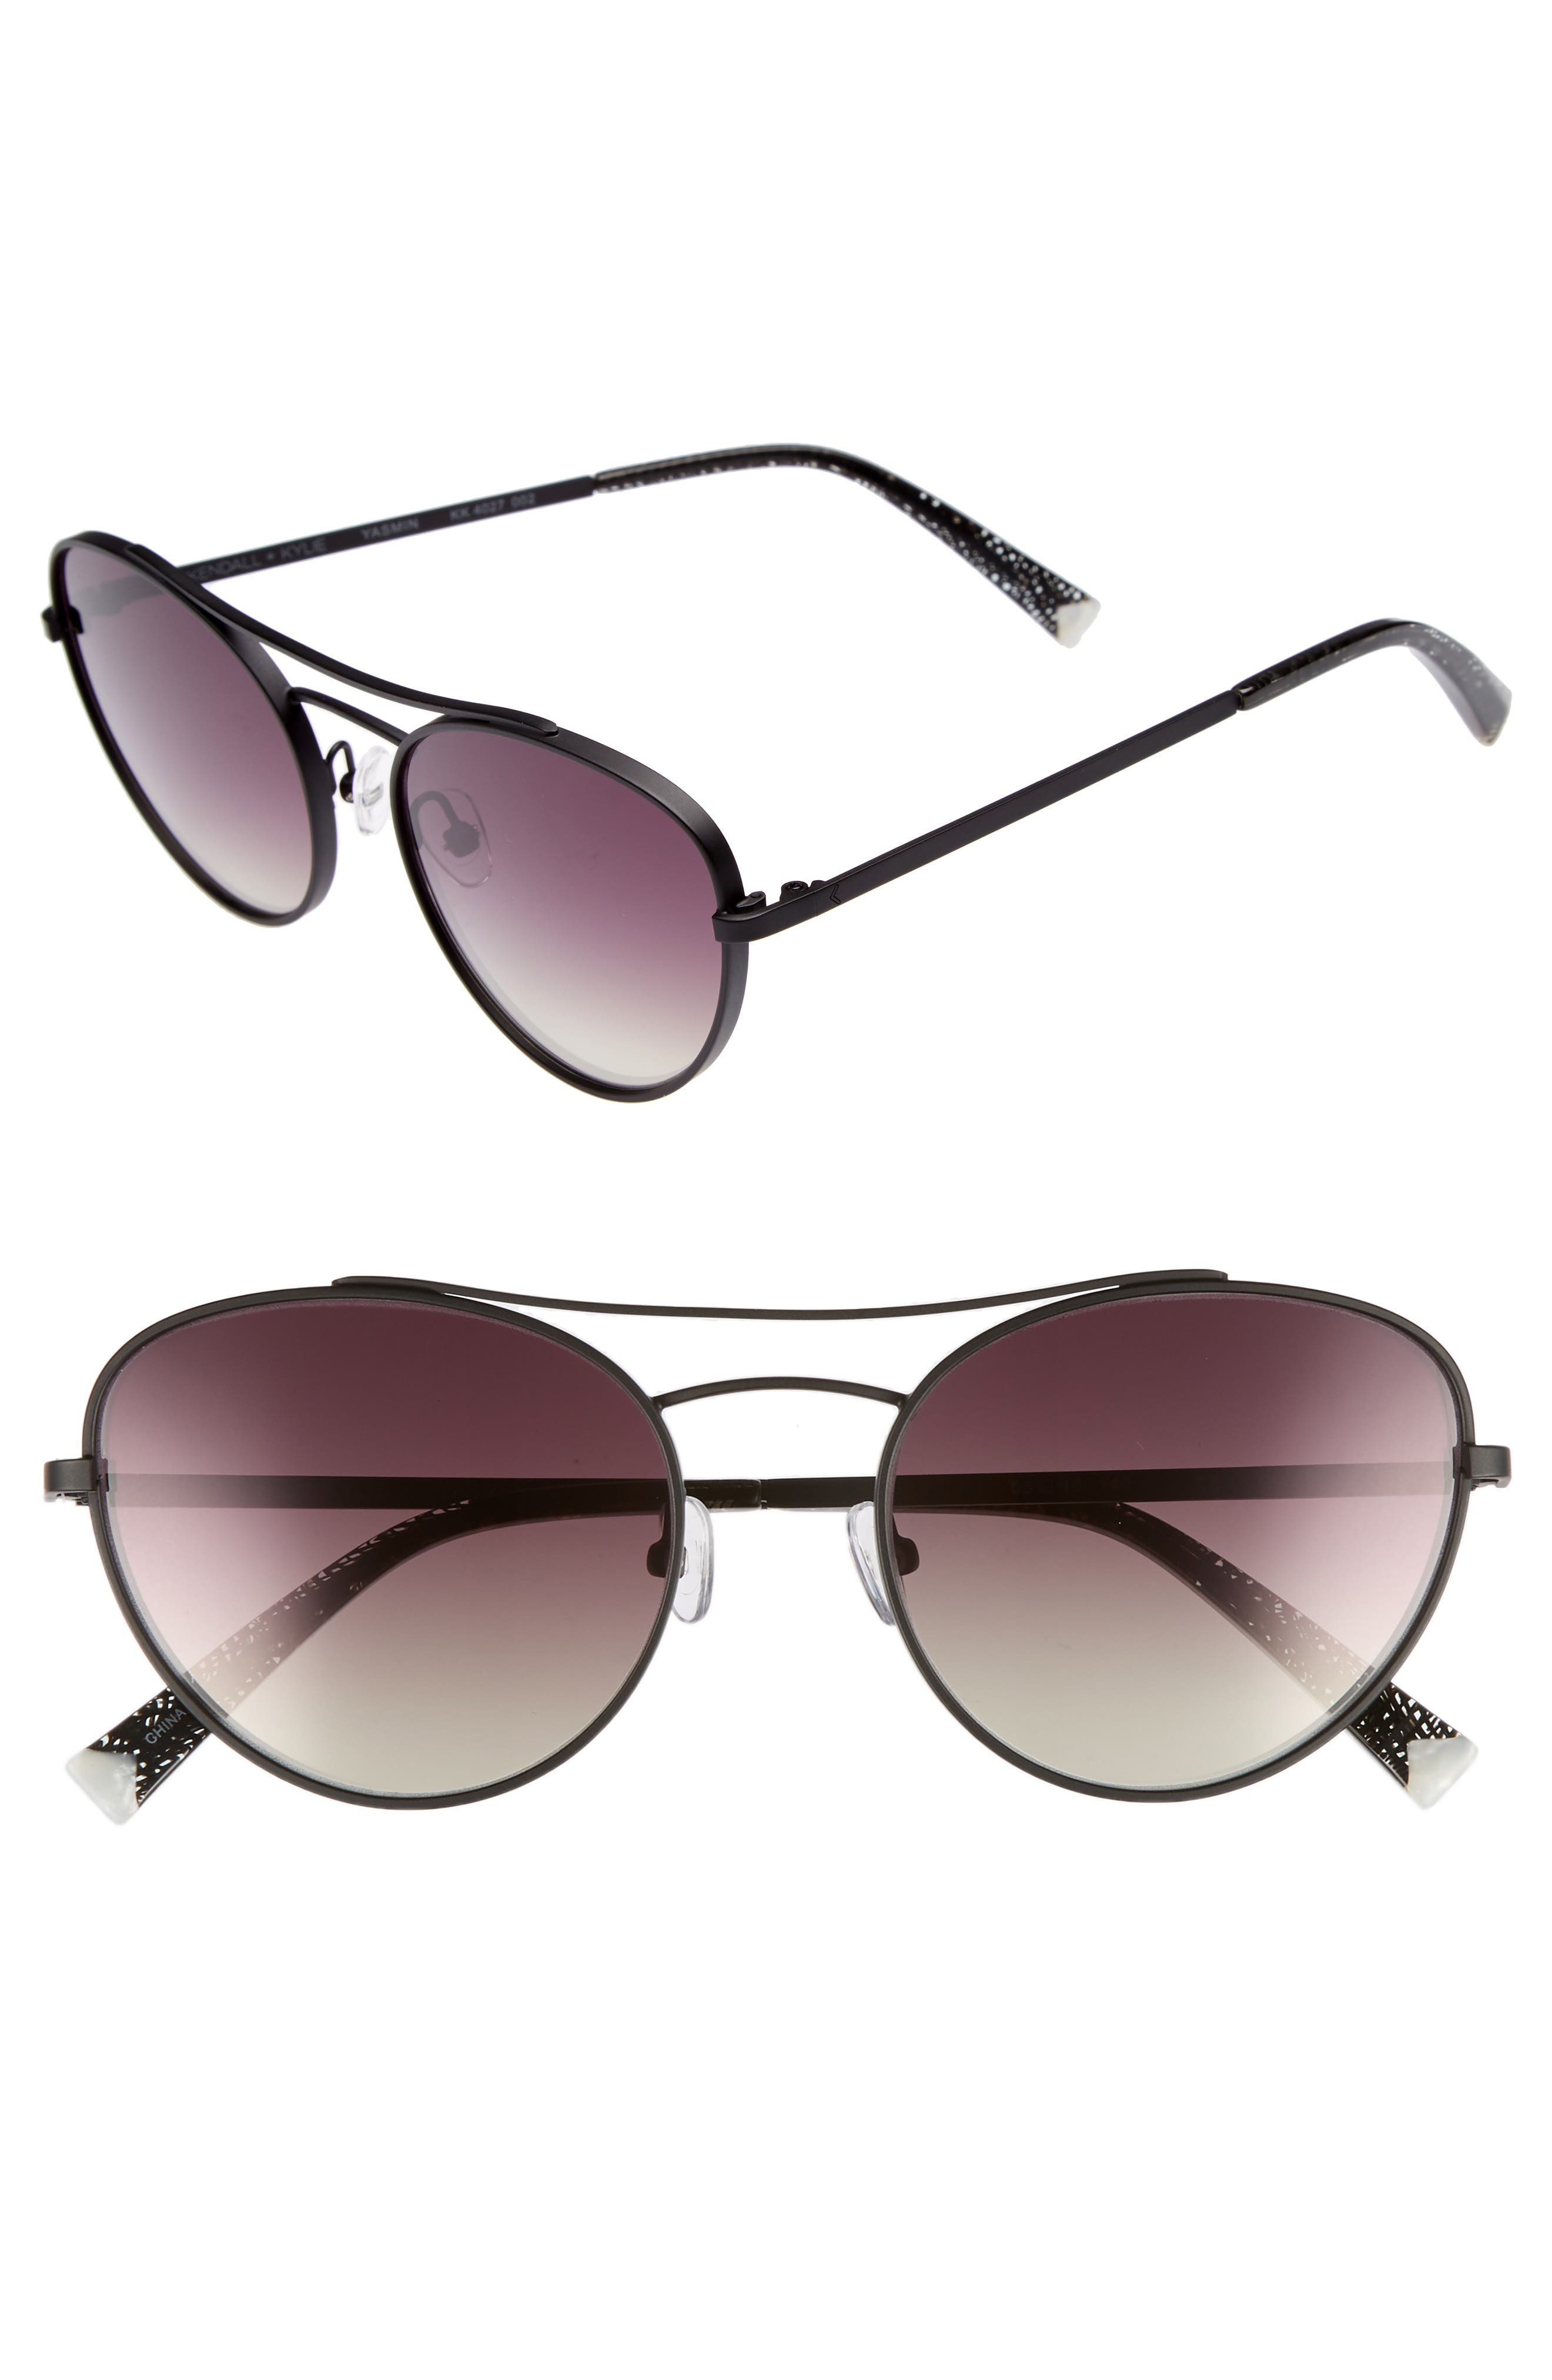 cef39abdcb43 Women s Sunglasses Sale